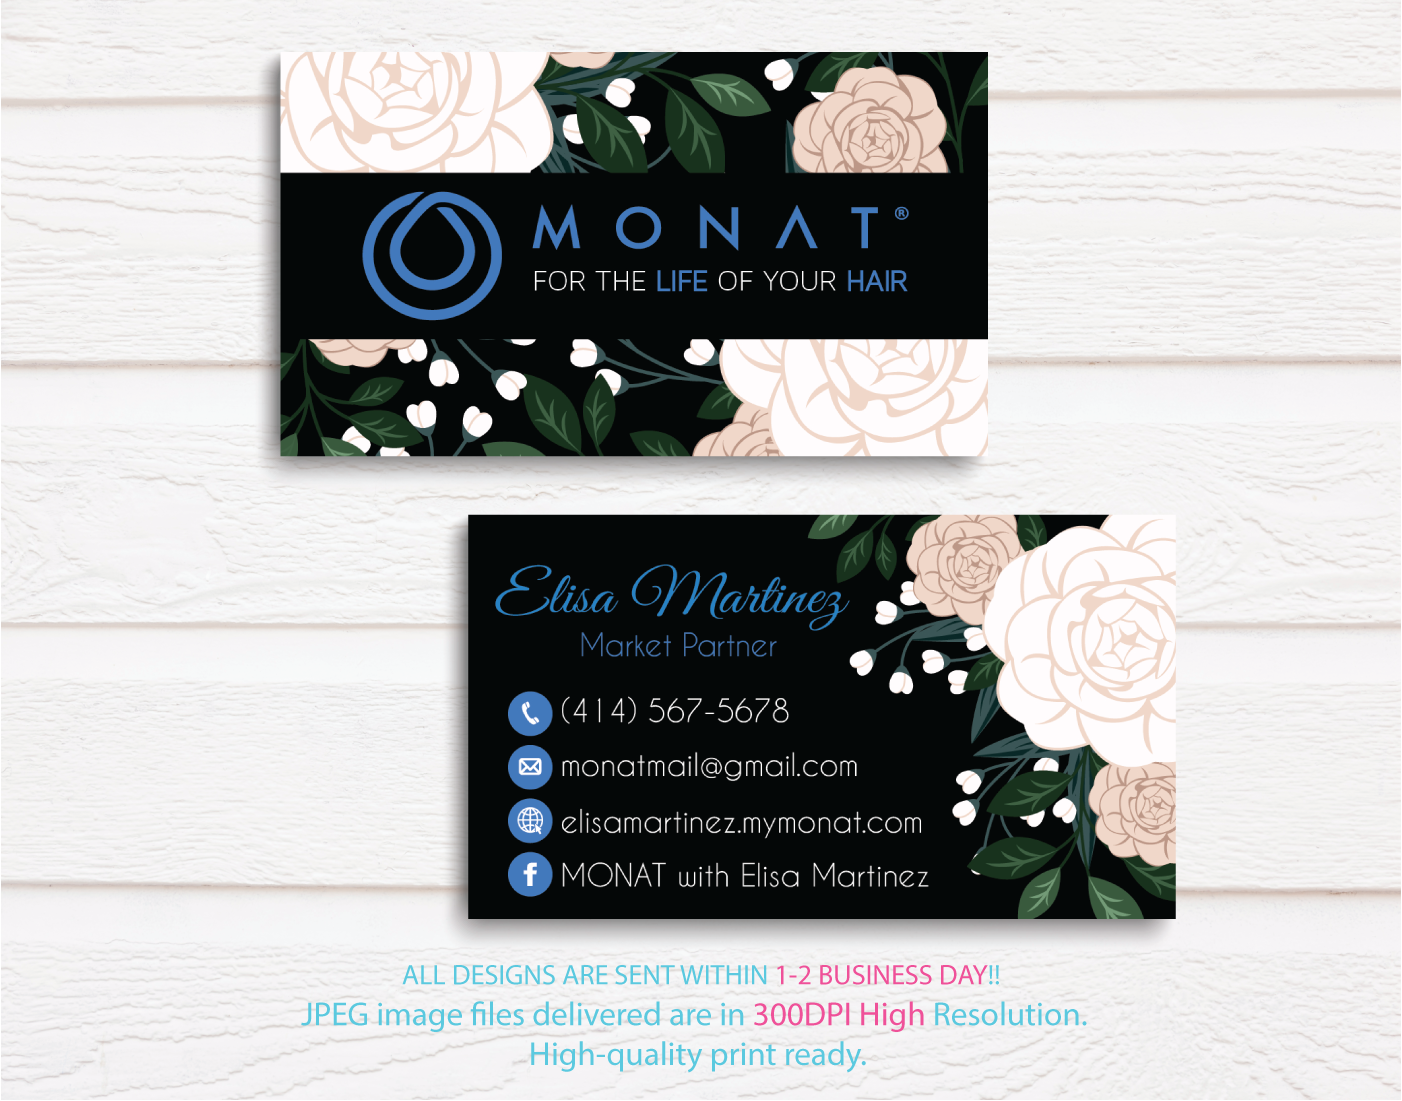 Monat Business Card, Custom Monat Business Card, Business